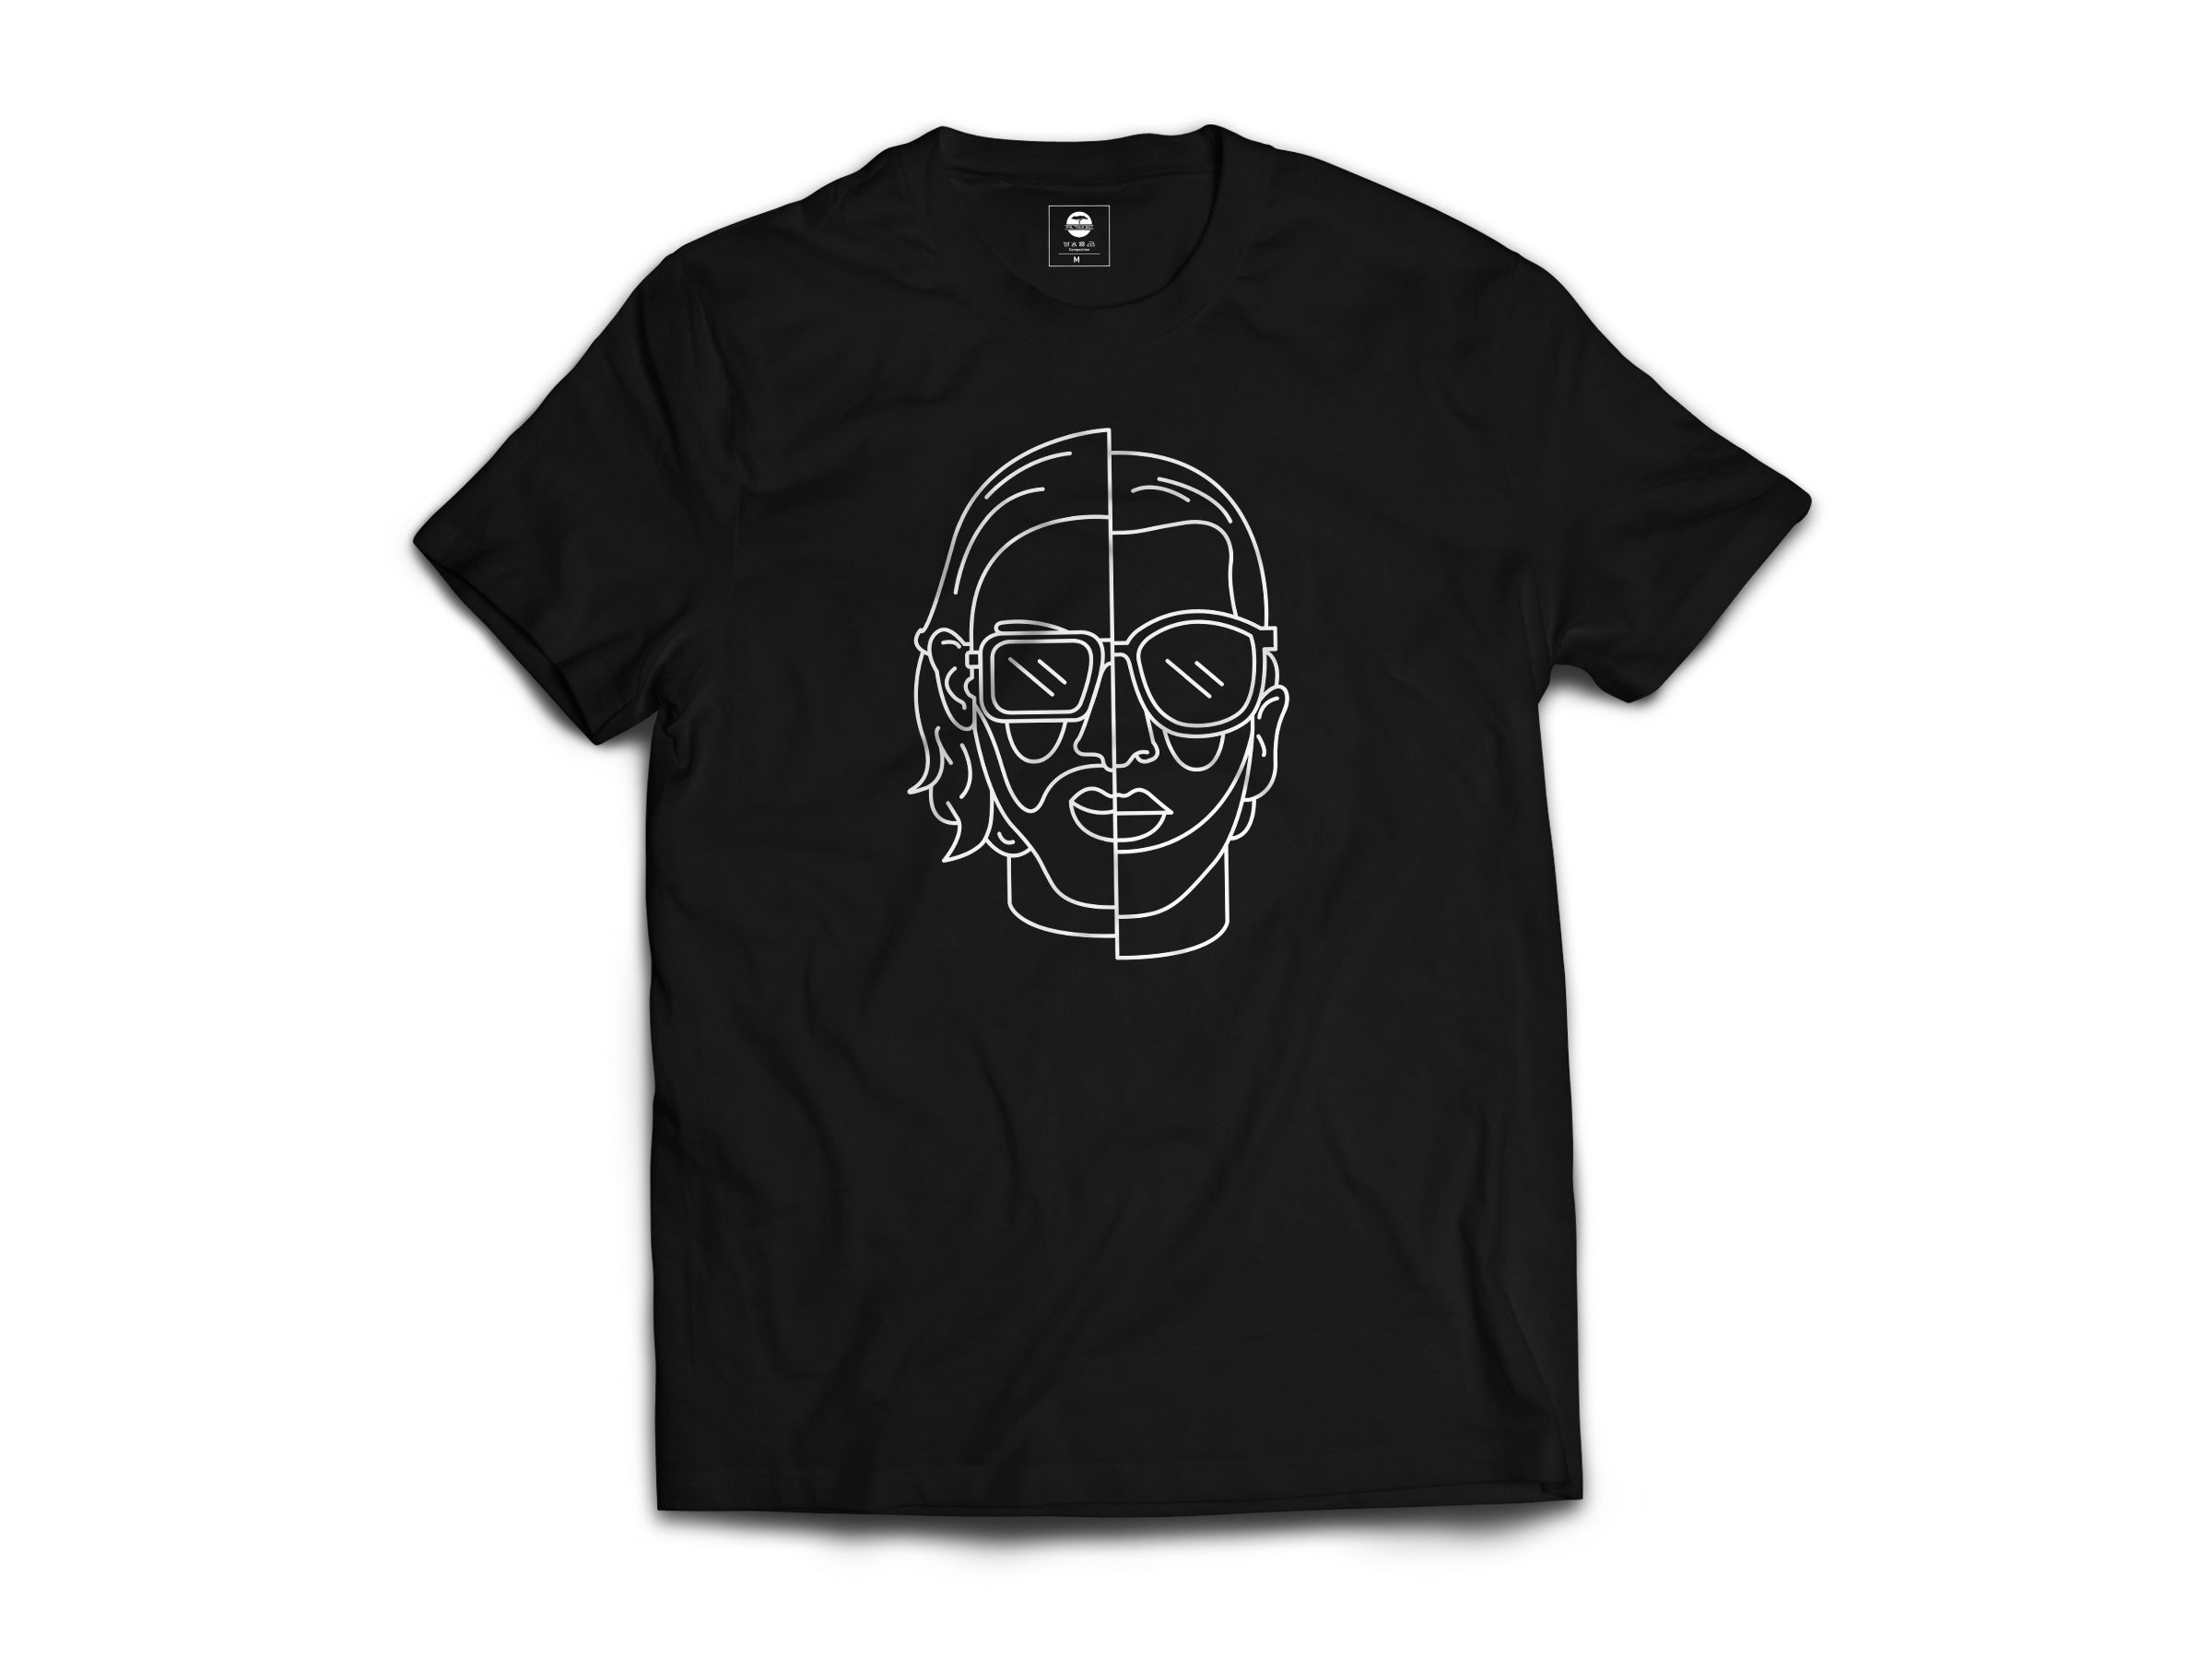 T-SHIRT CHICO NOIR